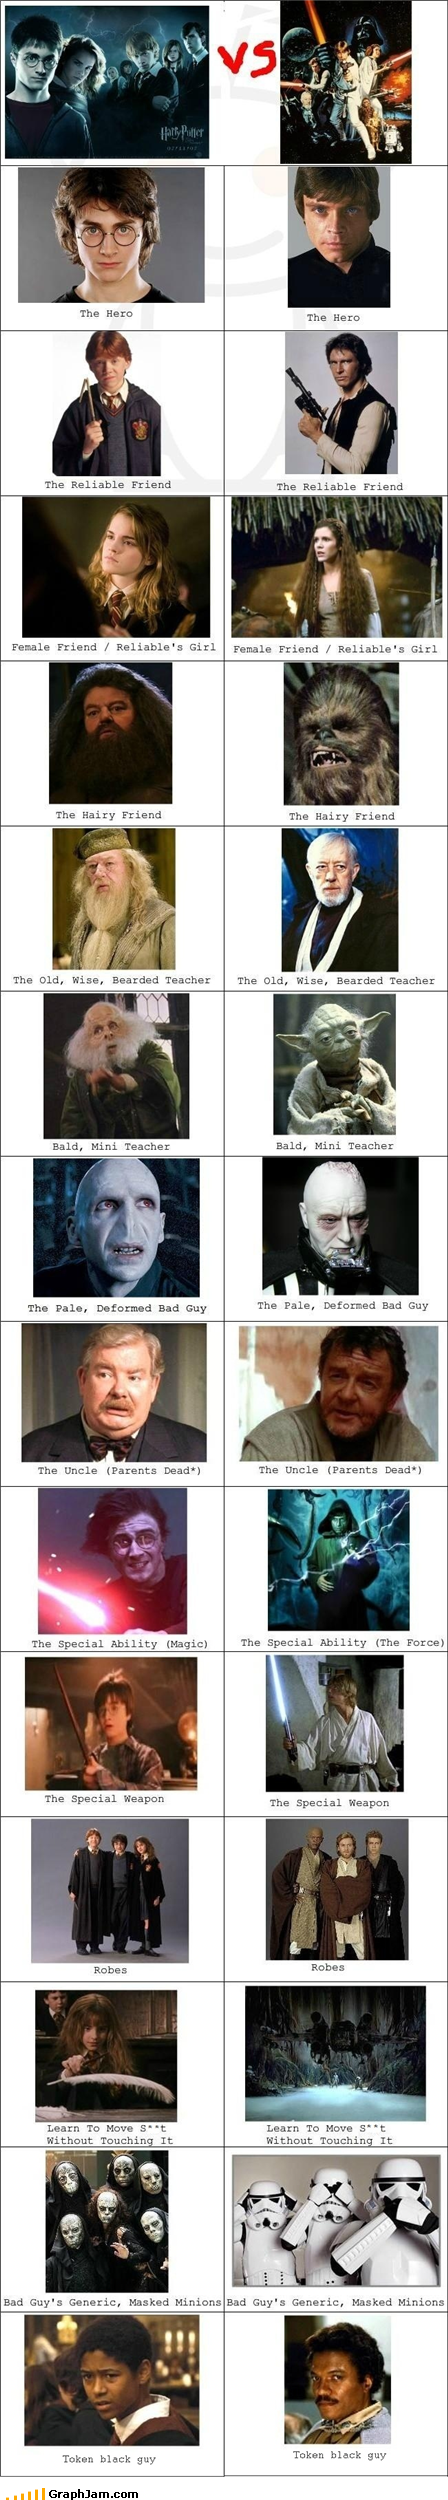 Harry Potter star wars versus